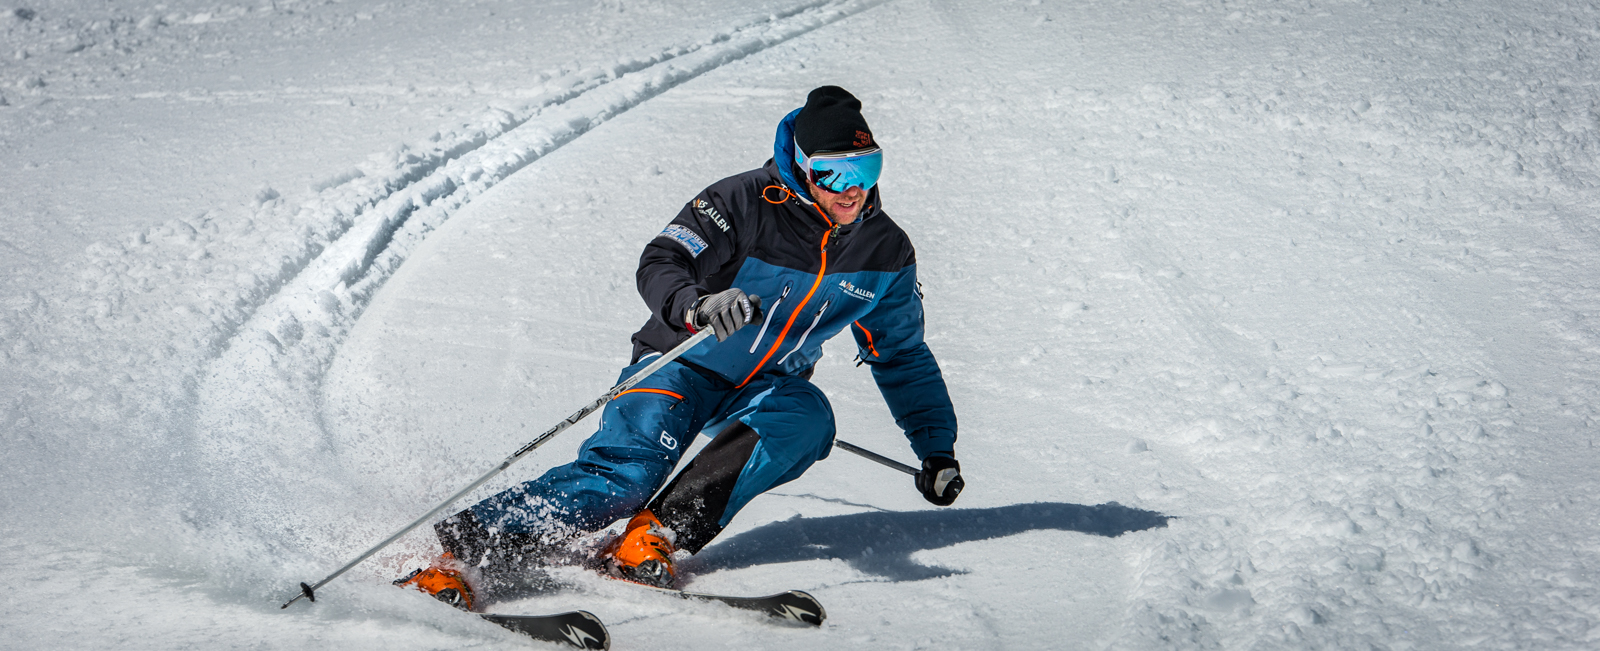 ski lessons in tignes and val disere